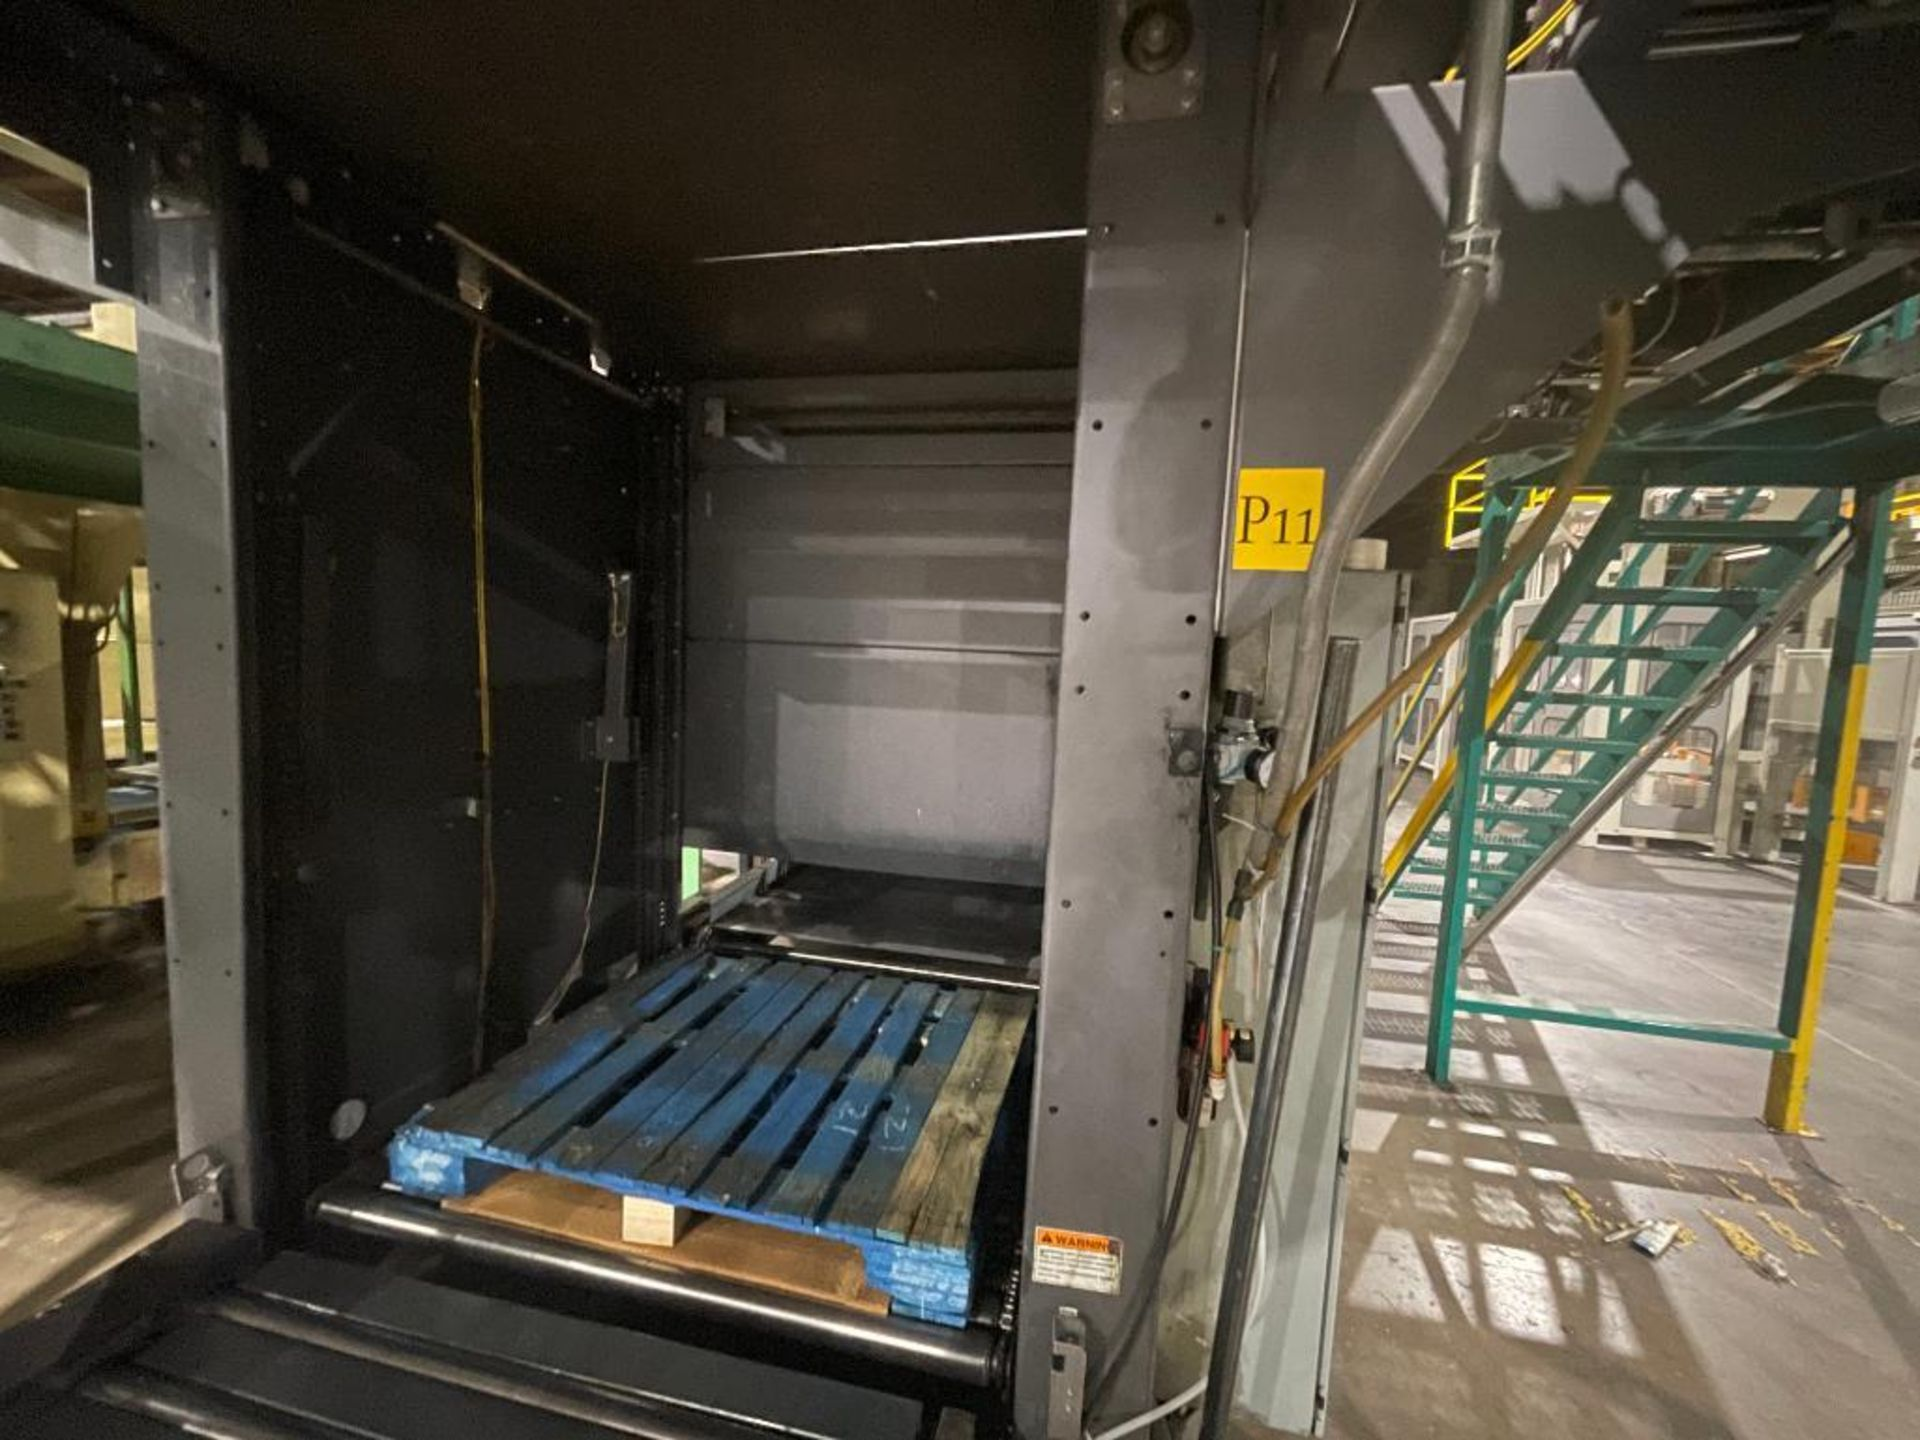 2008 Currie top to bottom palletizer, model PALLETIZER, sn 3348 - Image 15 of 28